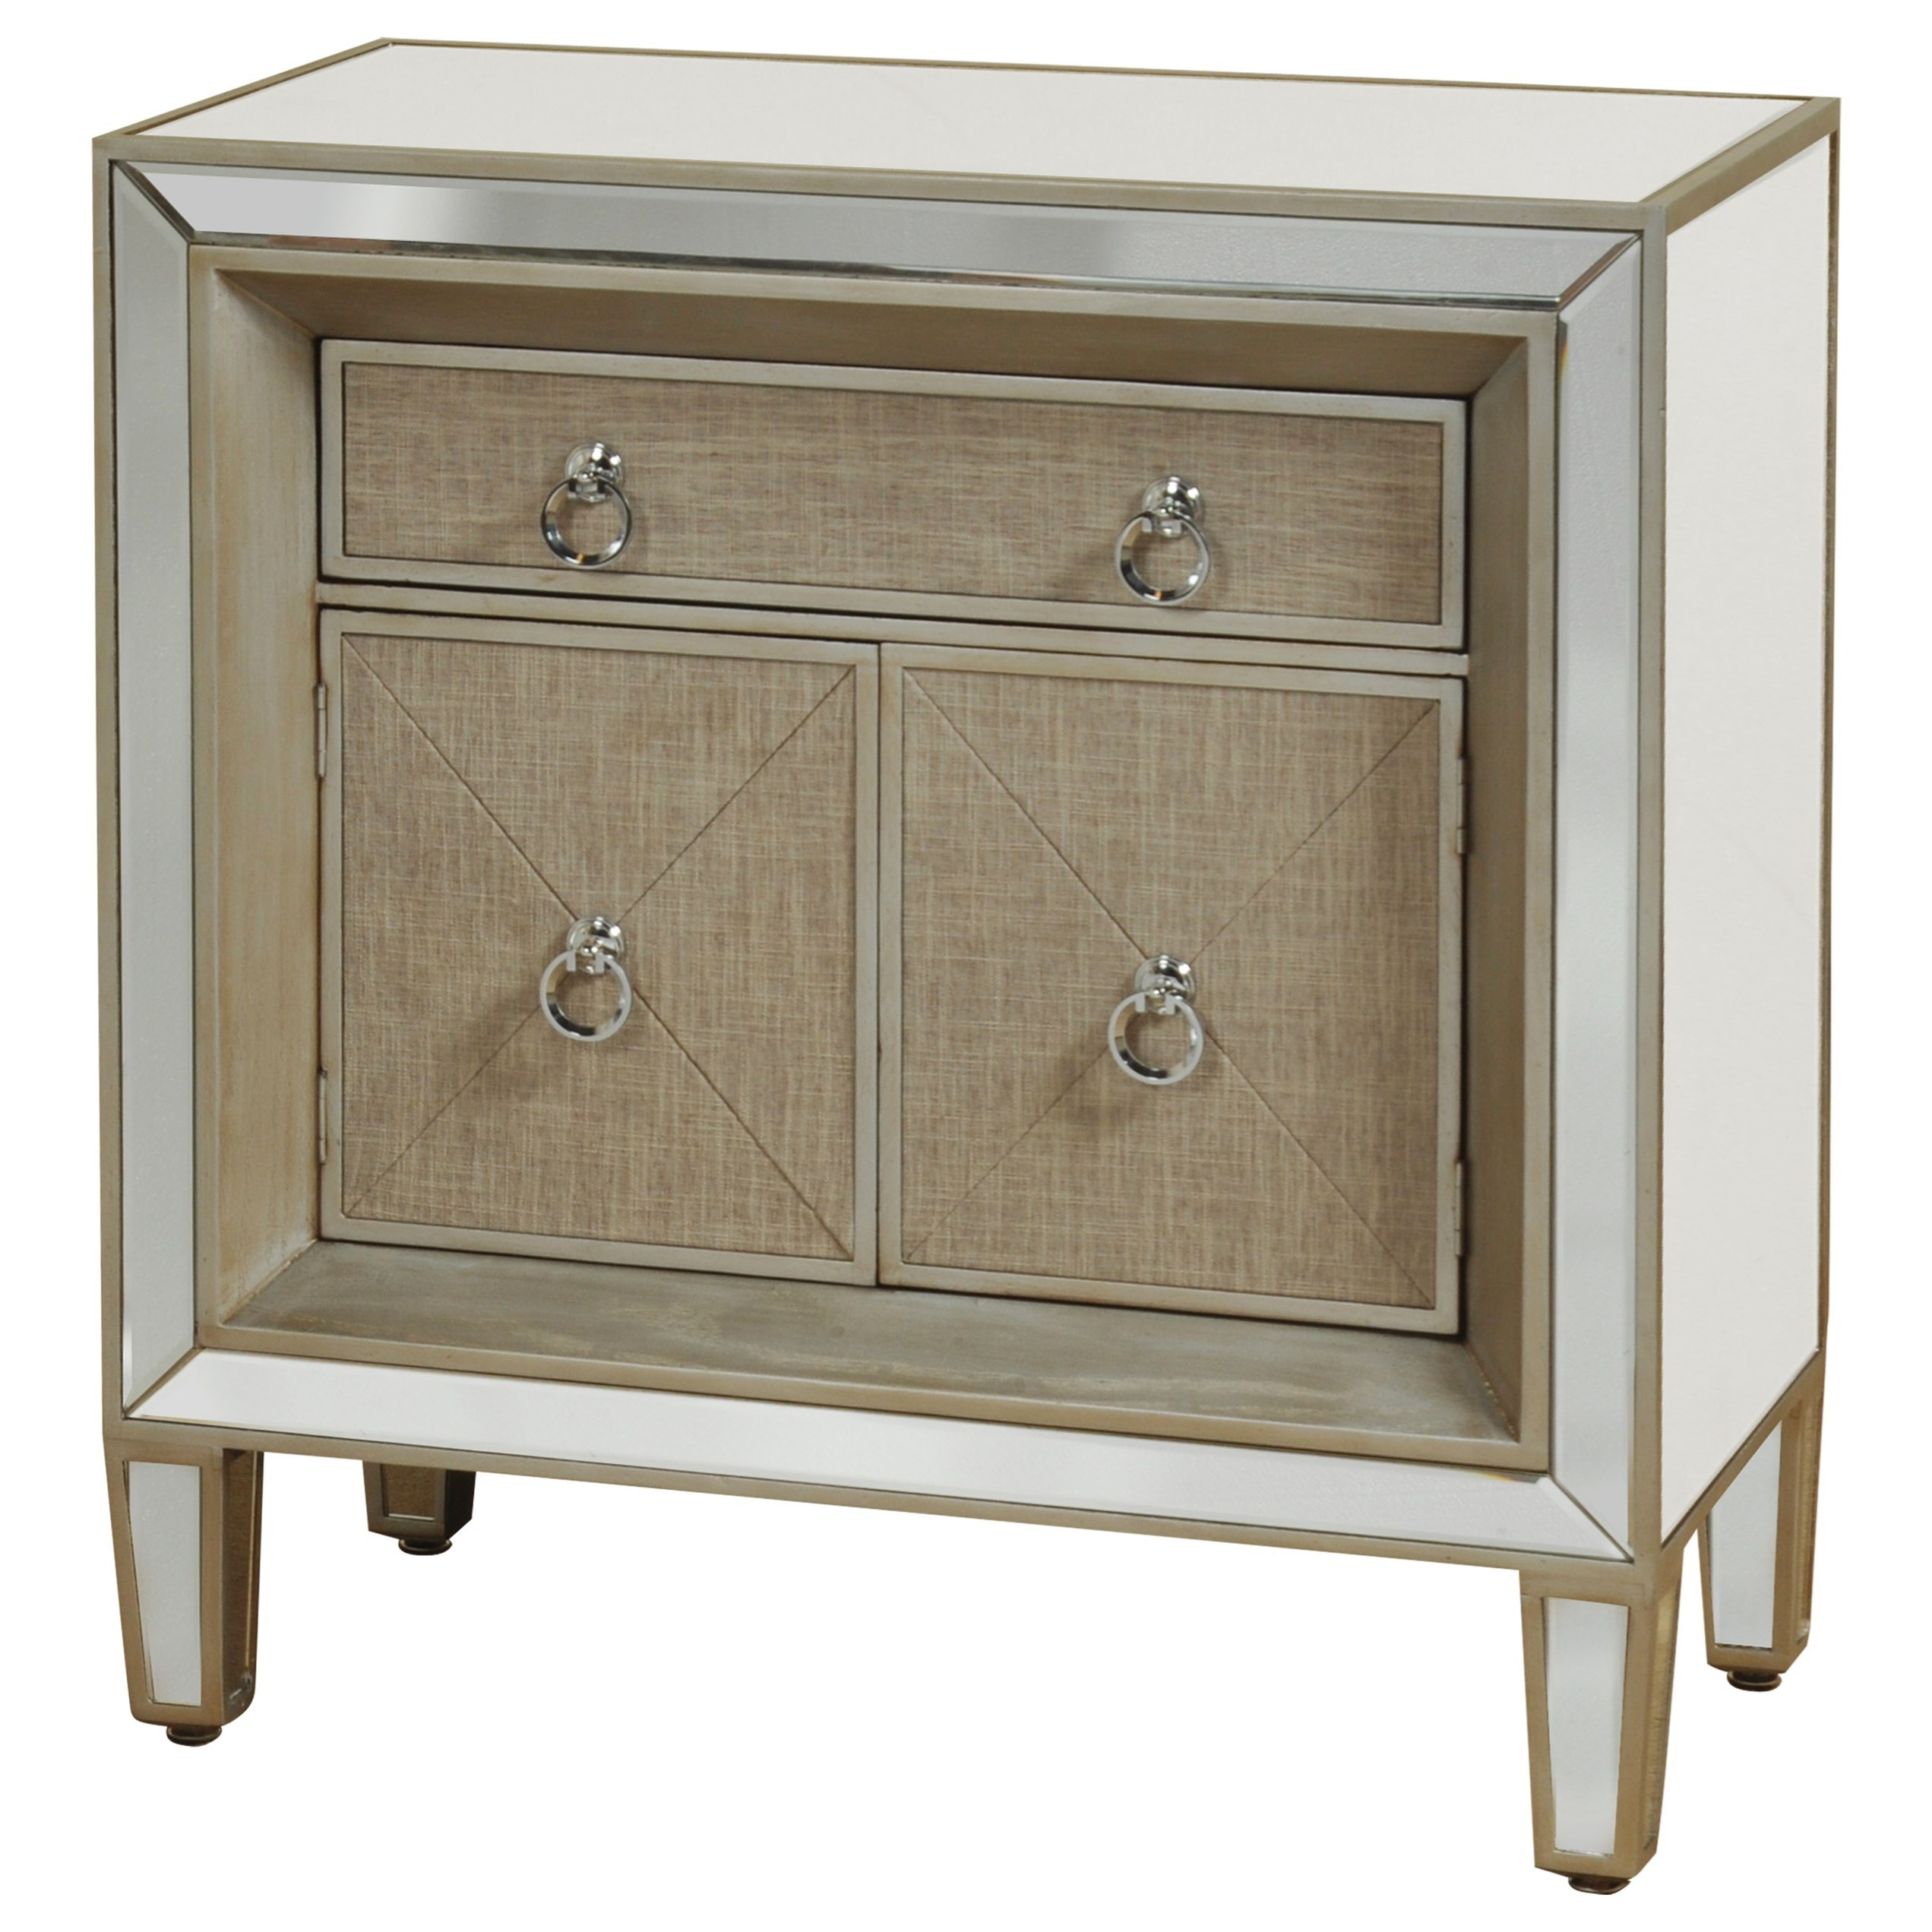 Occasional Cabinets Mirrored Night Stand by StyleCraft at Alison Craig Home Furnishings